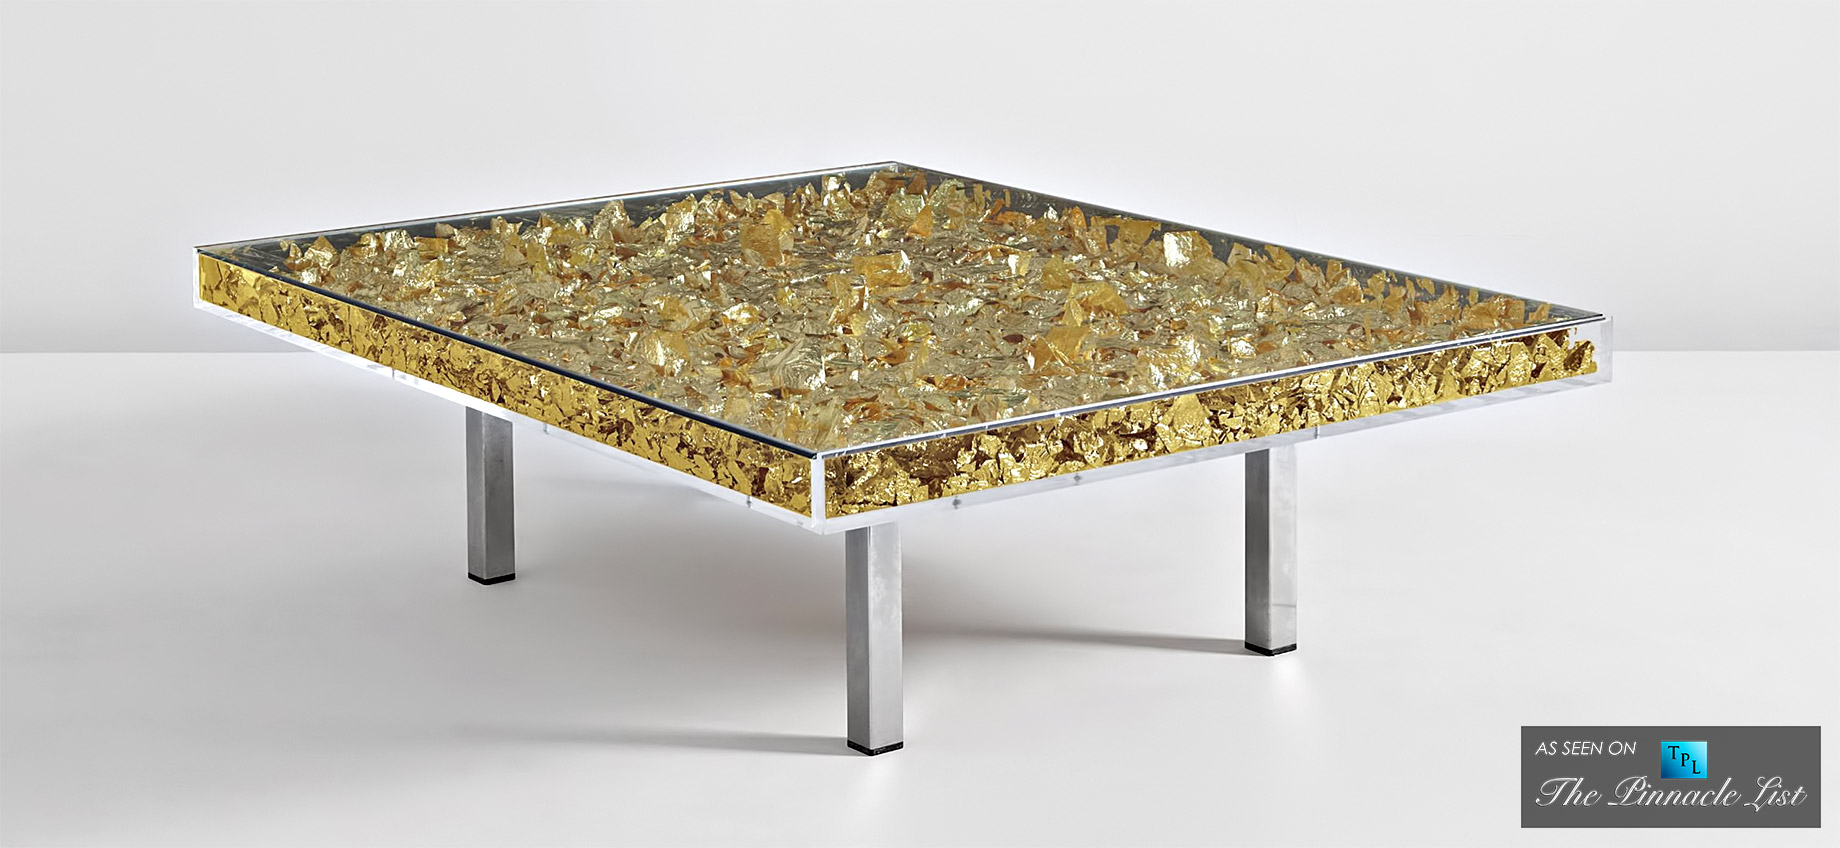 Contemporary Art As Modern Luxury Furniture Spotlighting The Yves Klein Table Of 1963 The